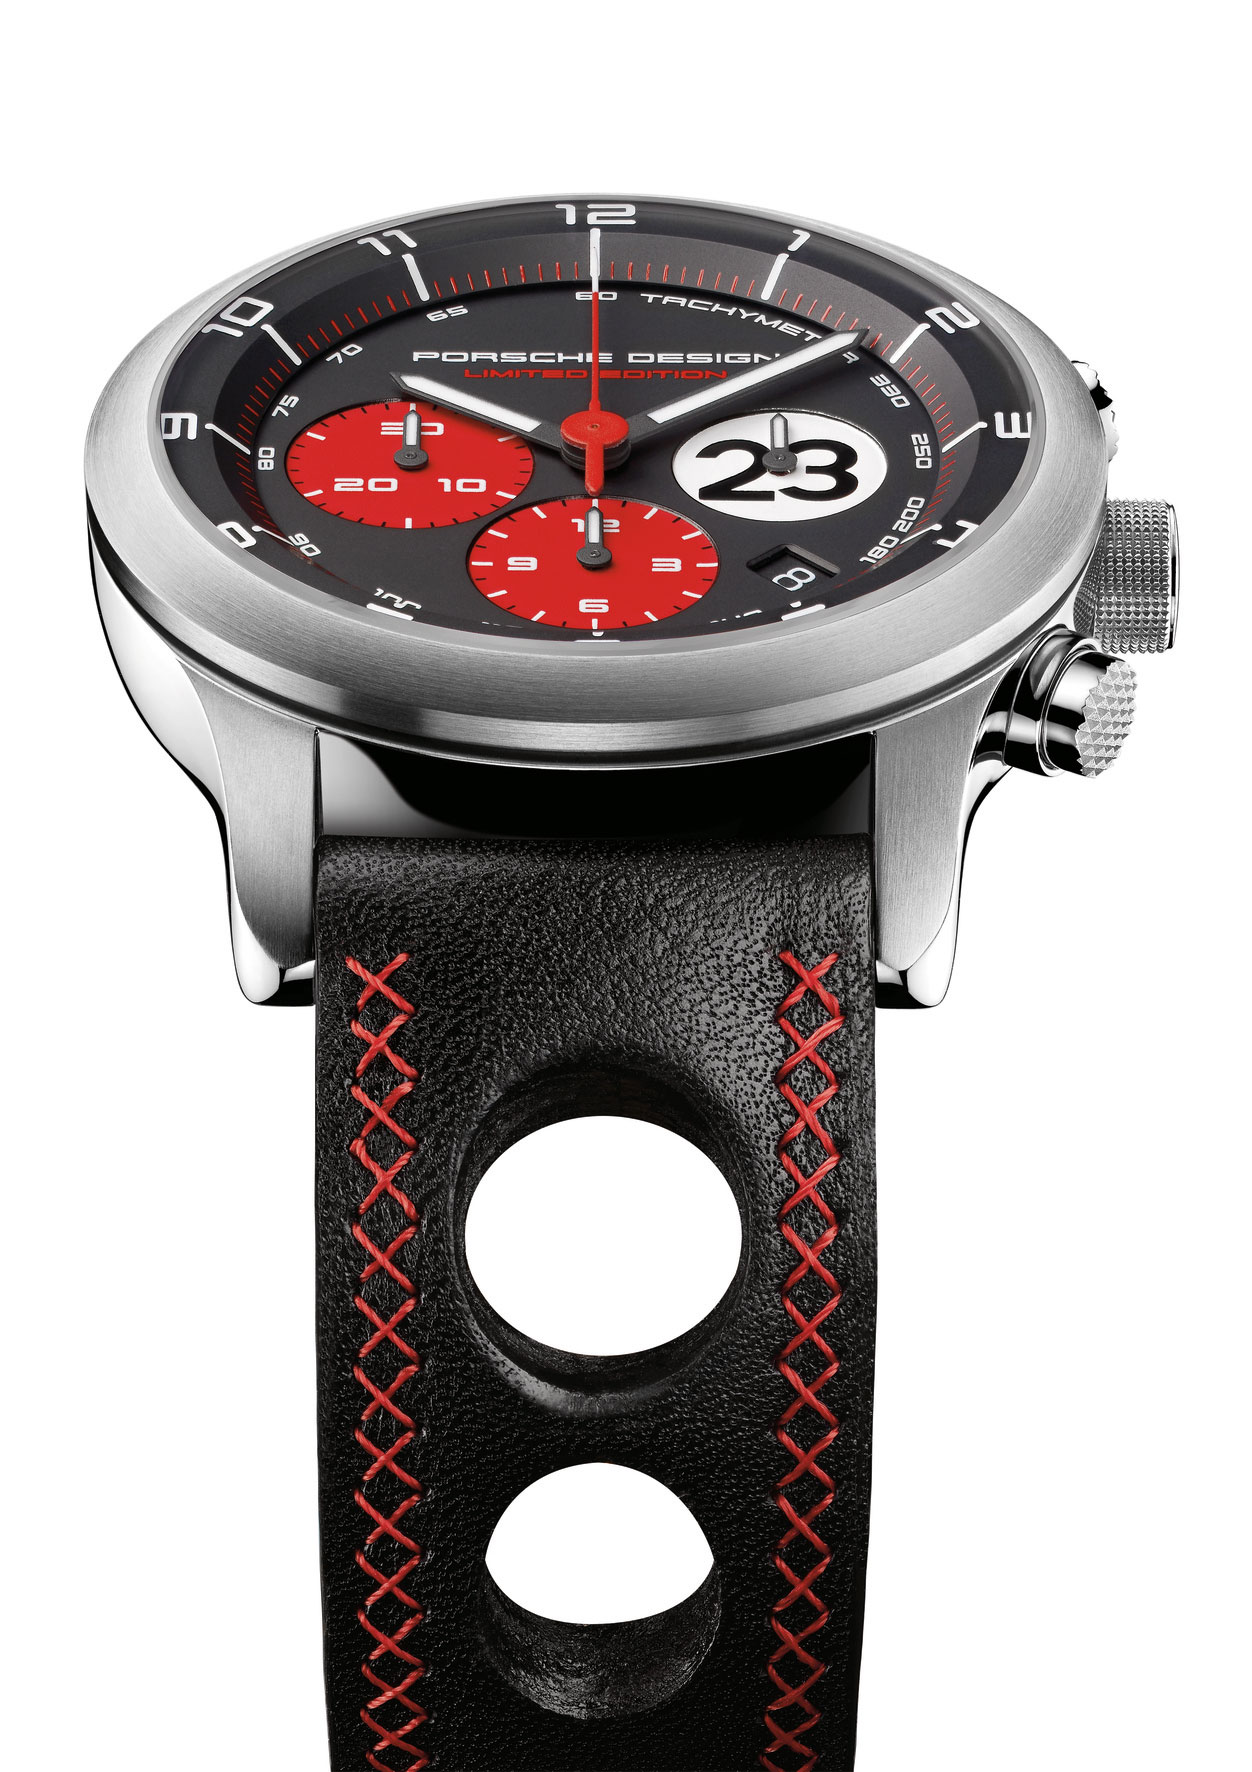 Porsche Design P'6612 Dashboard Le Mans 1970 Watch